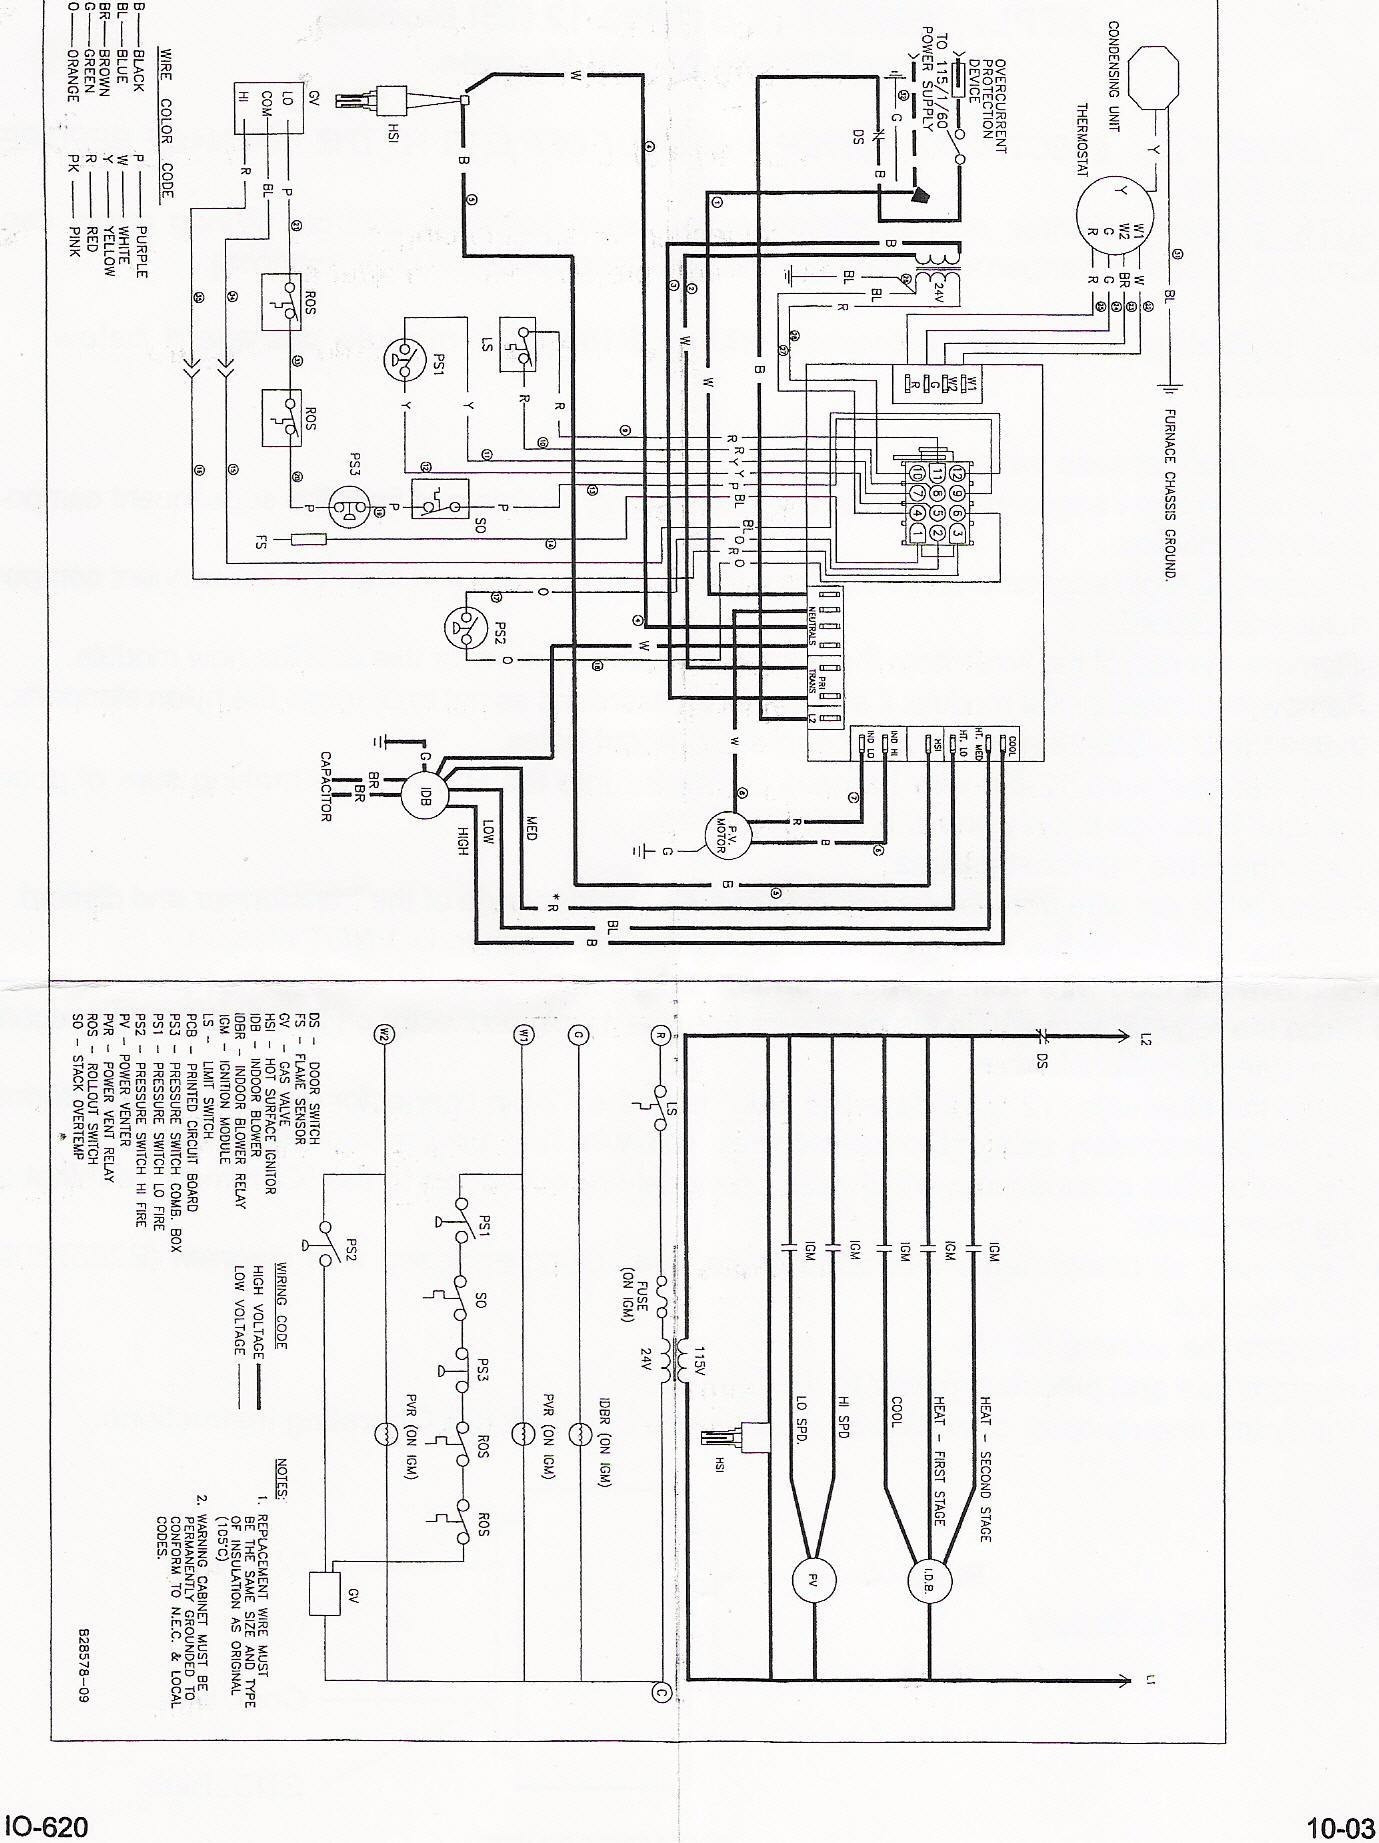 Wiringdiagram 1998 Ford Ranger Engine Wiring Diagram 1999 Gmc Truck